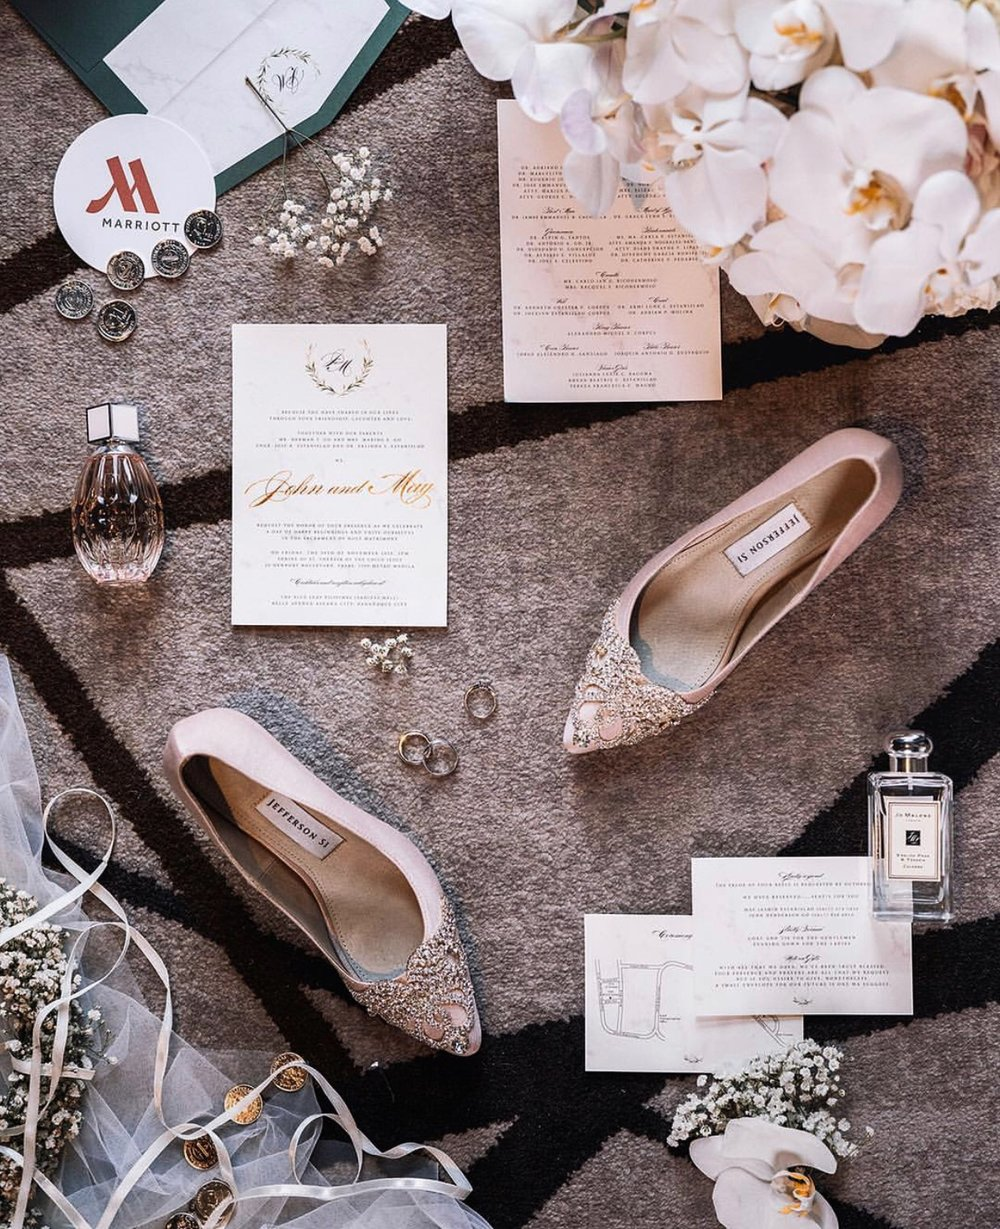 """""""Love you too Jeff 😘 Thank you again for the perfect wedding shoes! They gave me that extra boost of confidence and glamour on the big day not to mention the comfort during the biggest walk of my life!  My mom said her shoes got mistaken for the bridal shoes. That's how fabulous your creations are! Stay kind and sweet. You've accomplished so much already but I know you're still destined for more and no doubt you'll achieve them all. God bless you always."""""""